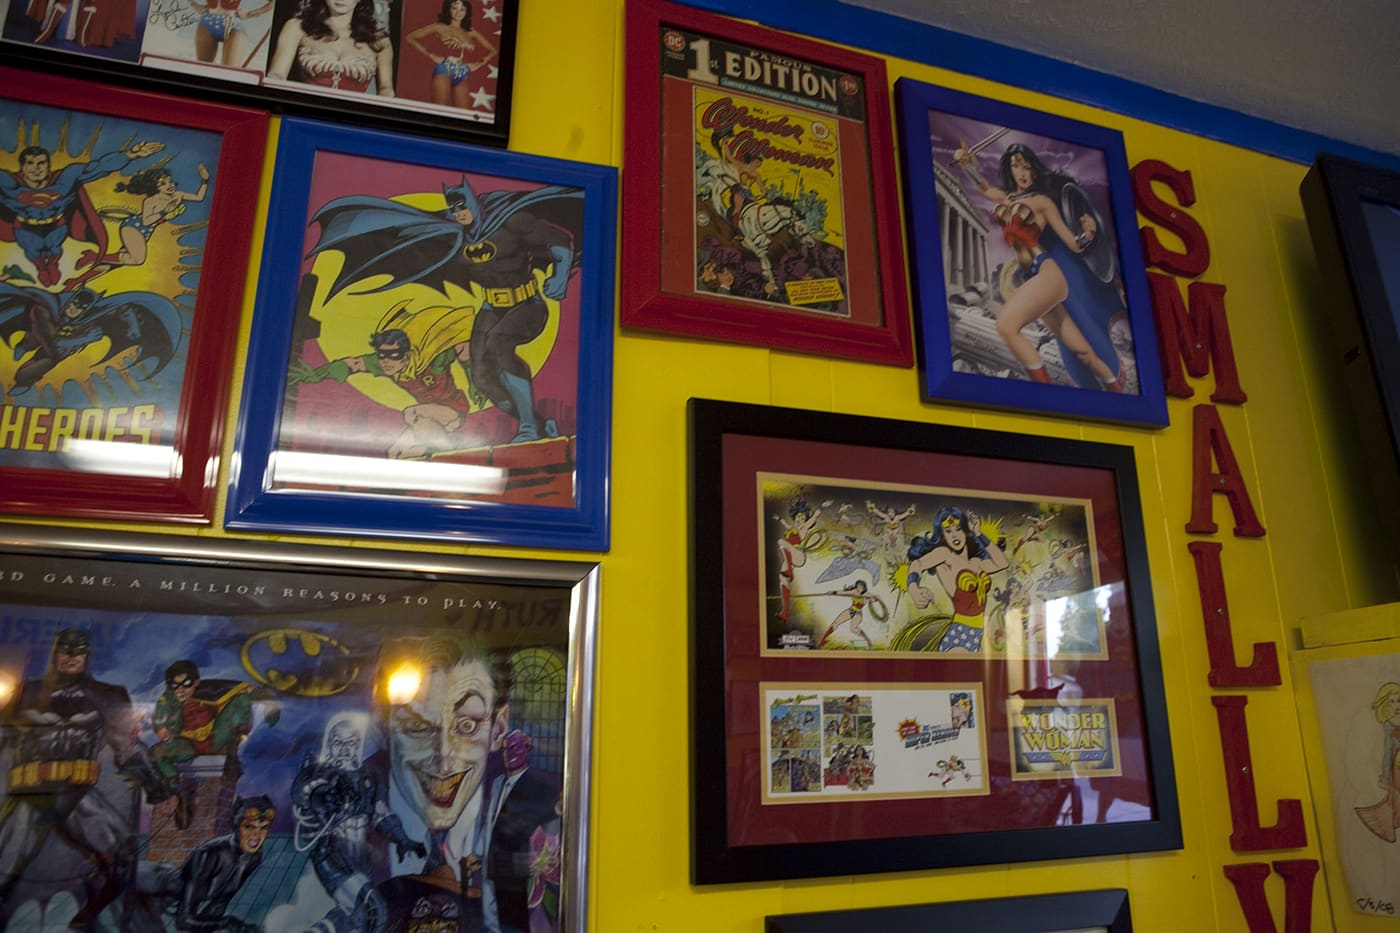 Superman art. SuperTAM on 66 - Superman Memorabilia & Ice Cream in Carterville, Missouri